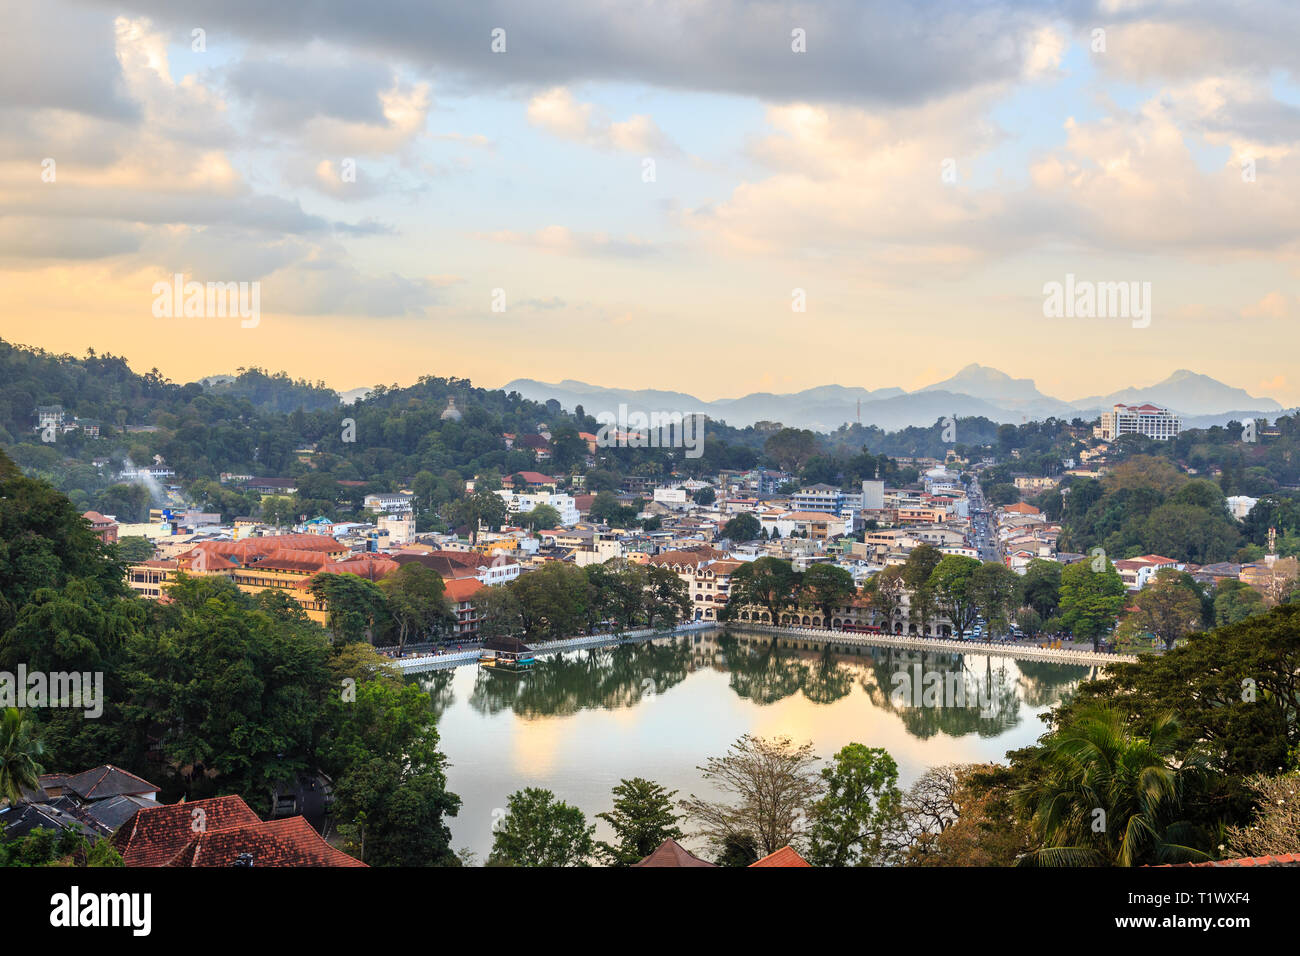 Srilankan Kandy city panorama with lake in the foreground, Central province, Sri Lanka Stock Photo